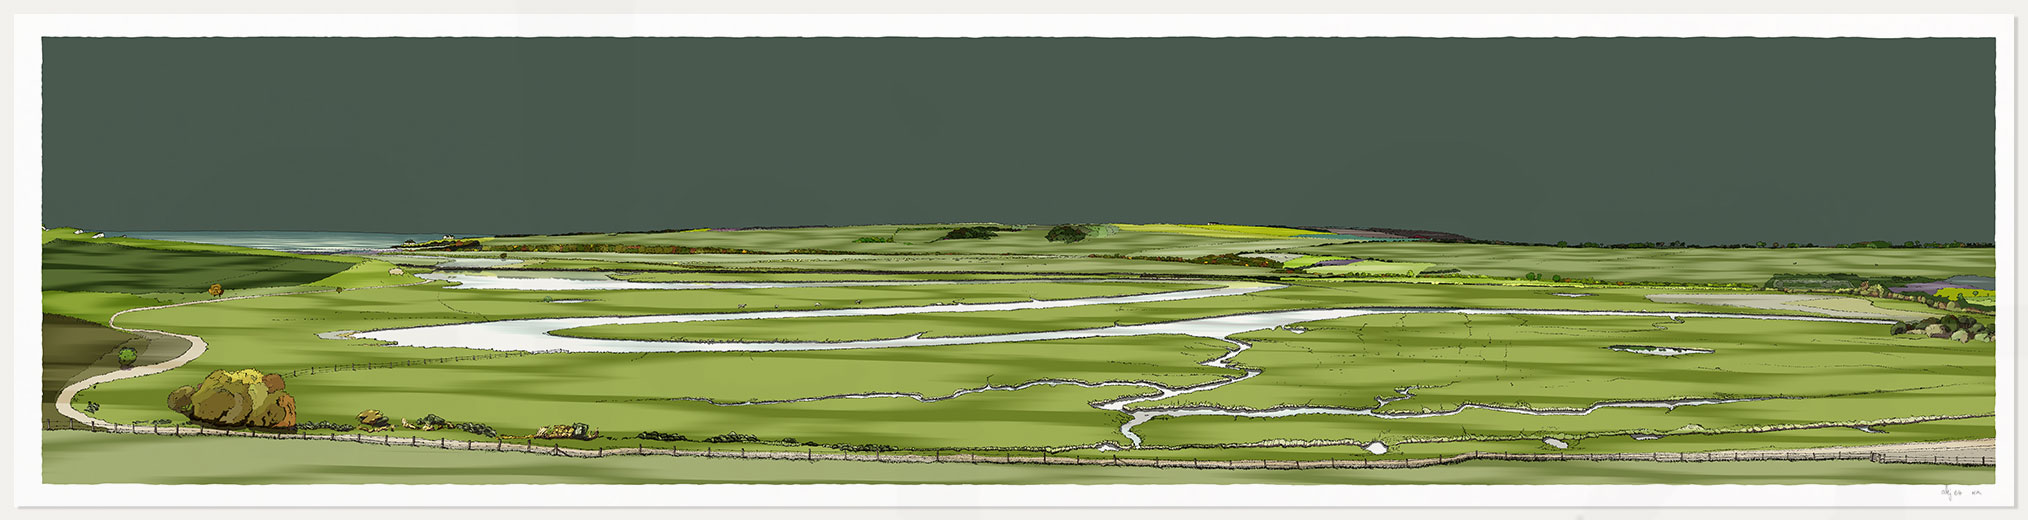 print anemd Cuckmere Haven Valley Emerald Skies by artist alej ez